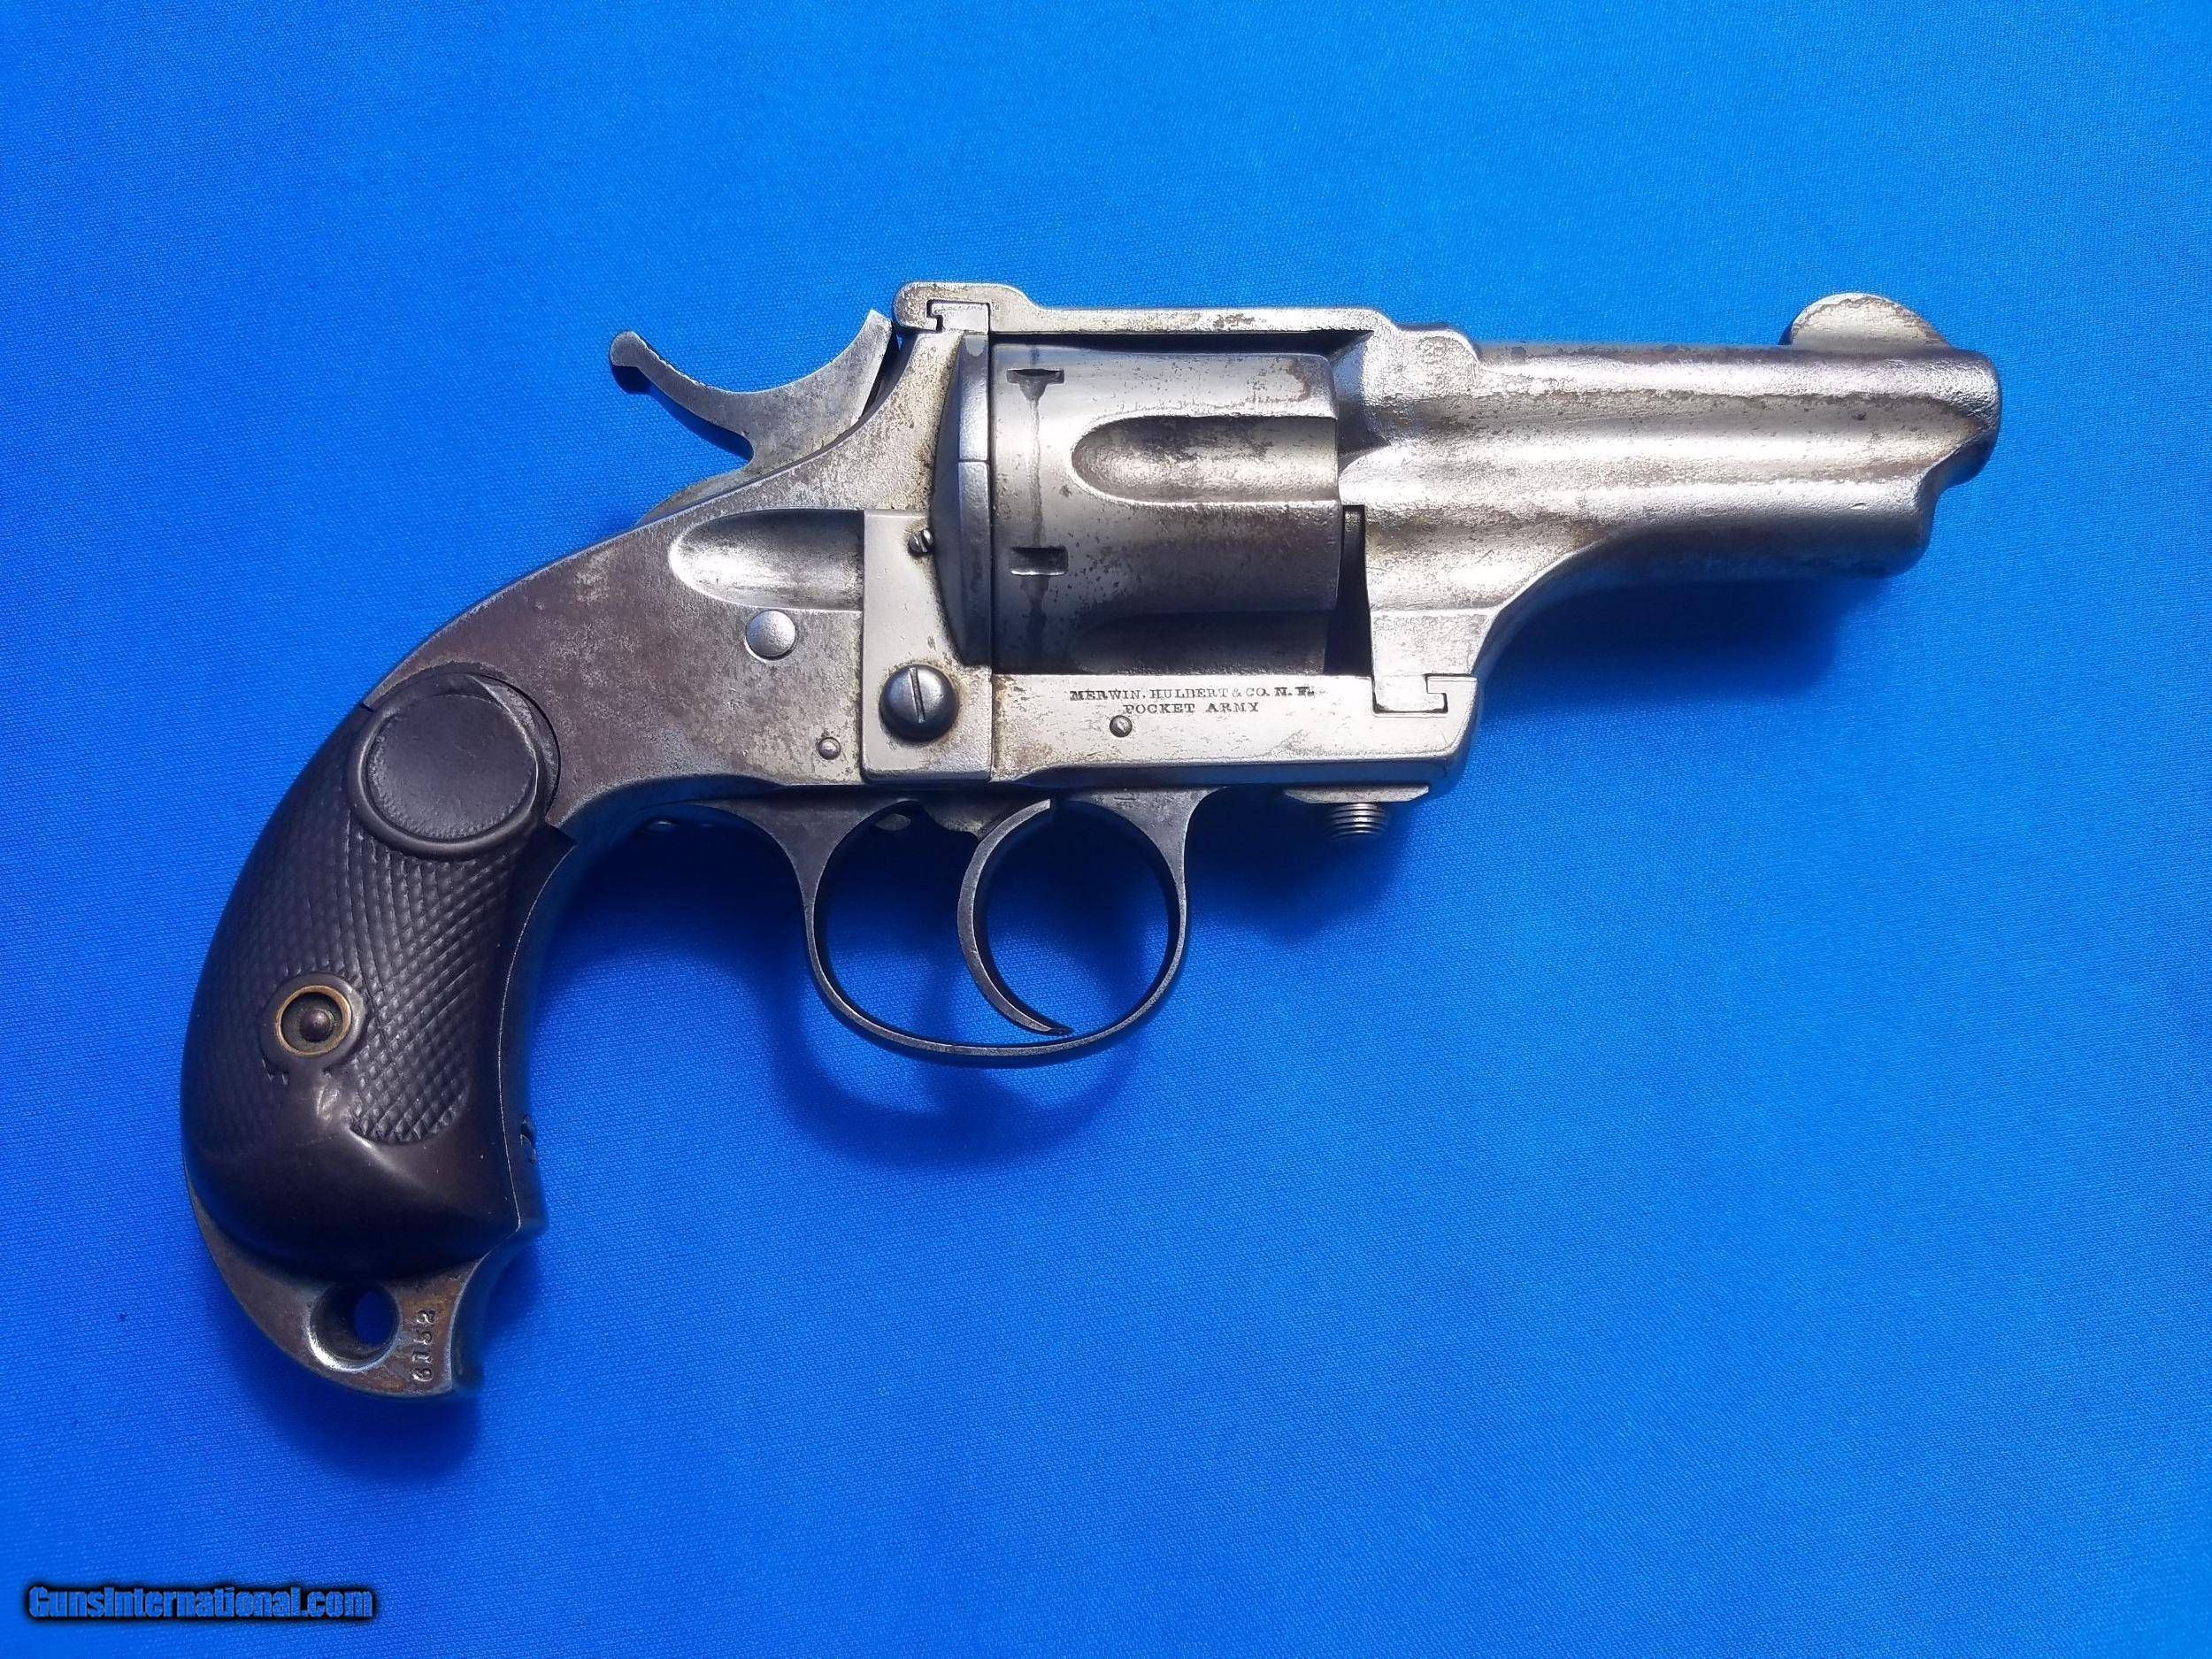 Ugly ducklings, no more merwin, hulbert & co. revolvers finally get respect as sought-after examples of old west hardware.